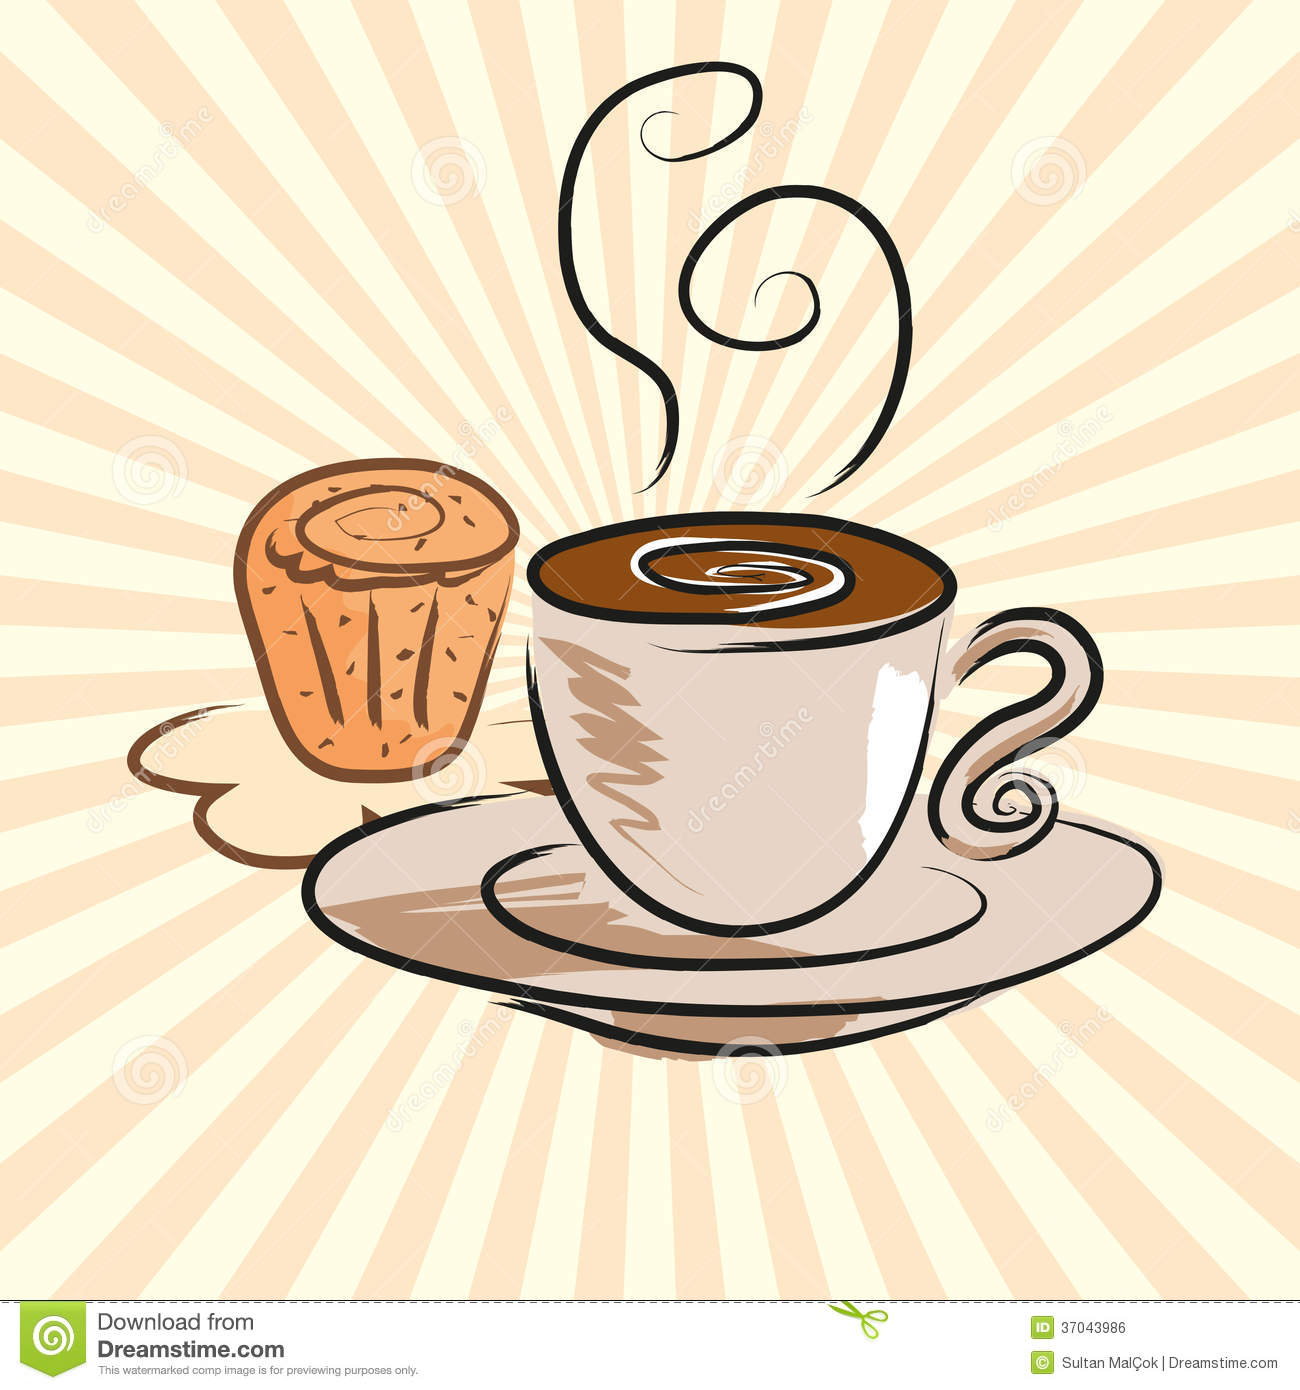 Clip Art Cake And Coffee : Coffee And Cake Royalty Free Stock Image - Image: 37043986